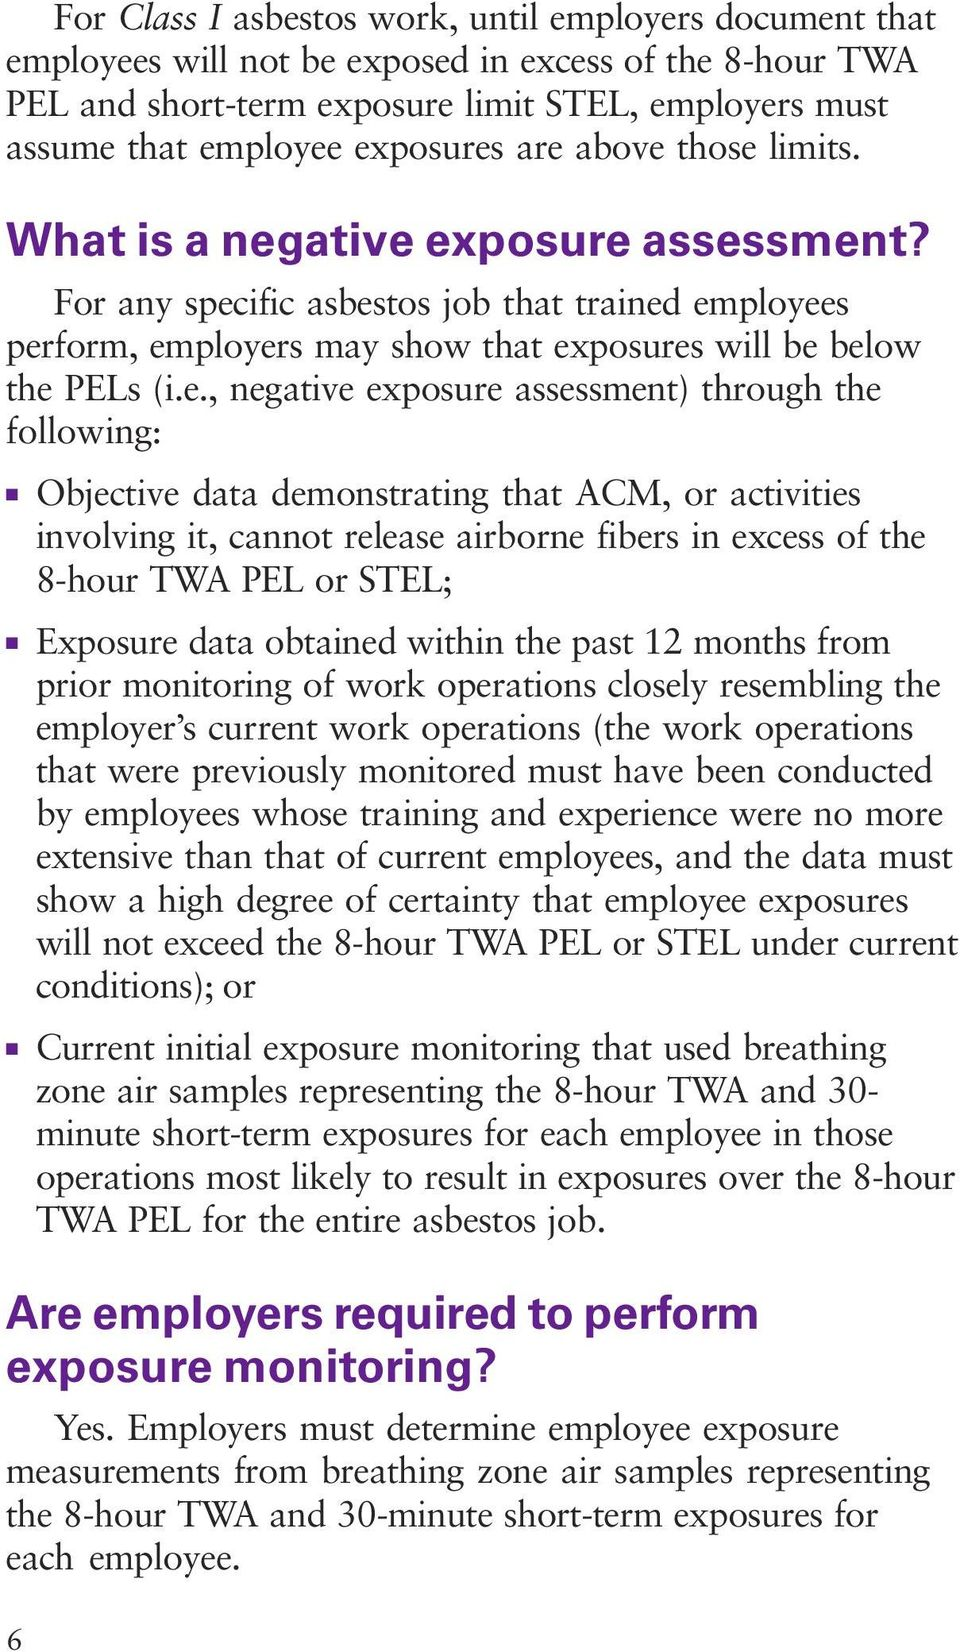 negative exposure assessment) through the following: 6 Objective data demonstrating that ACM, or activities involving it, cannot release airborne fibers in excess of the 8-hour TWA PEL or STEL;